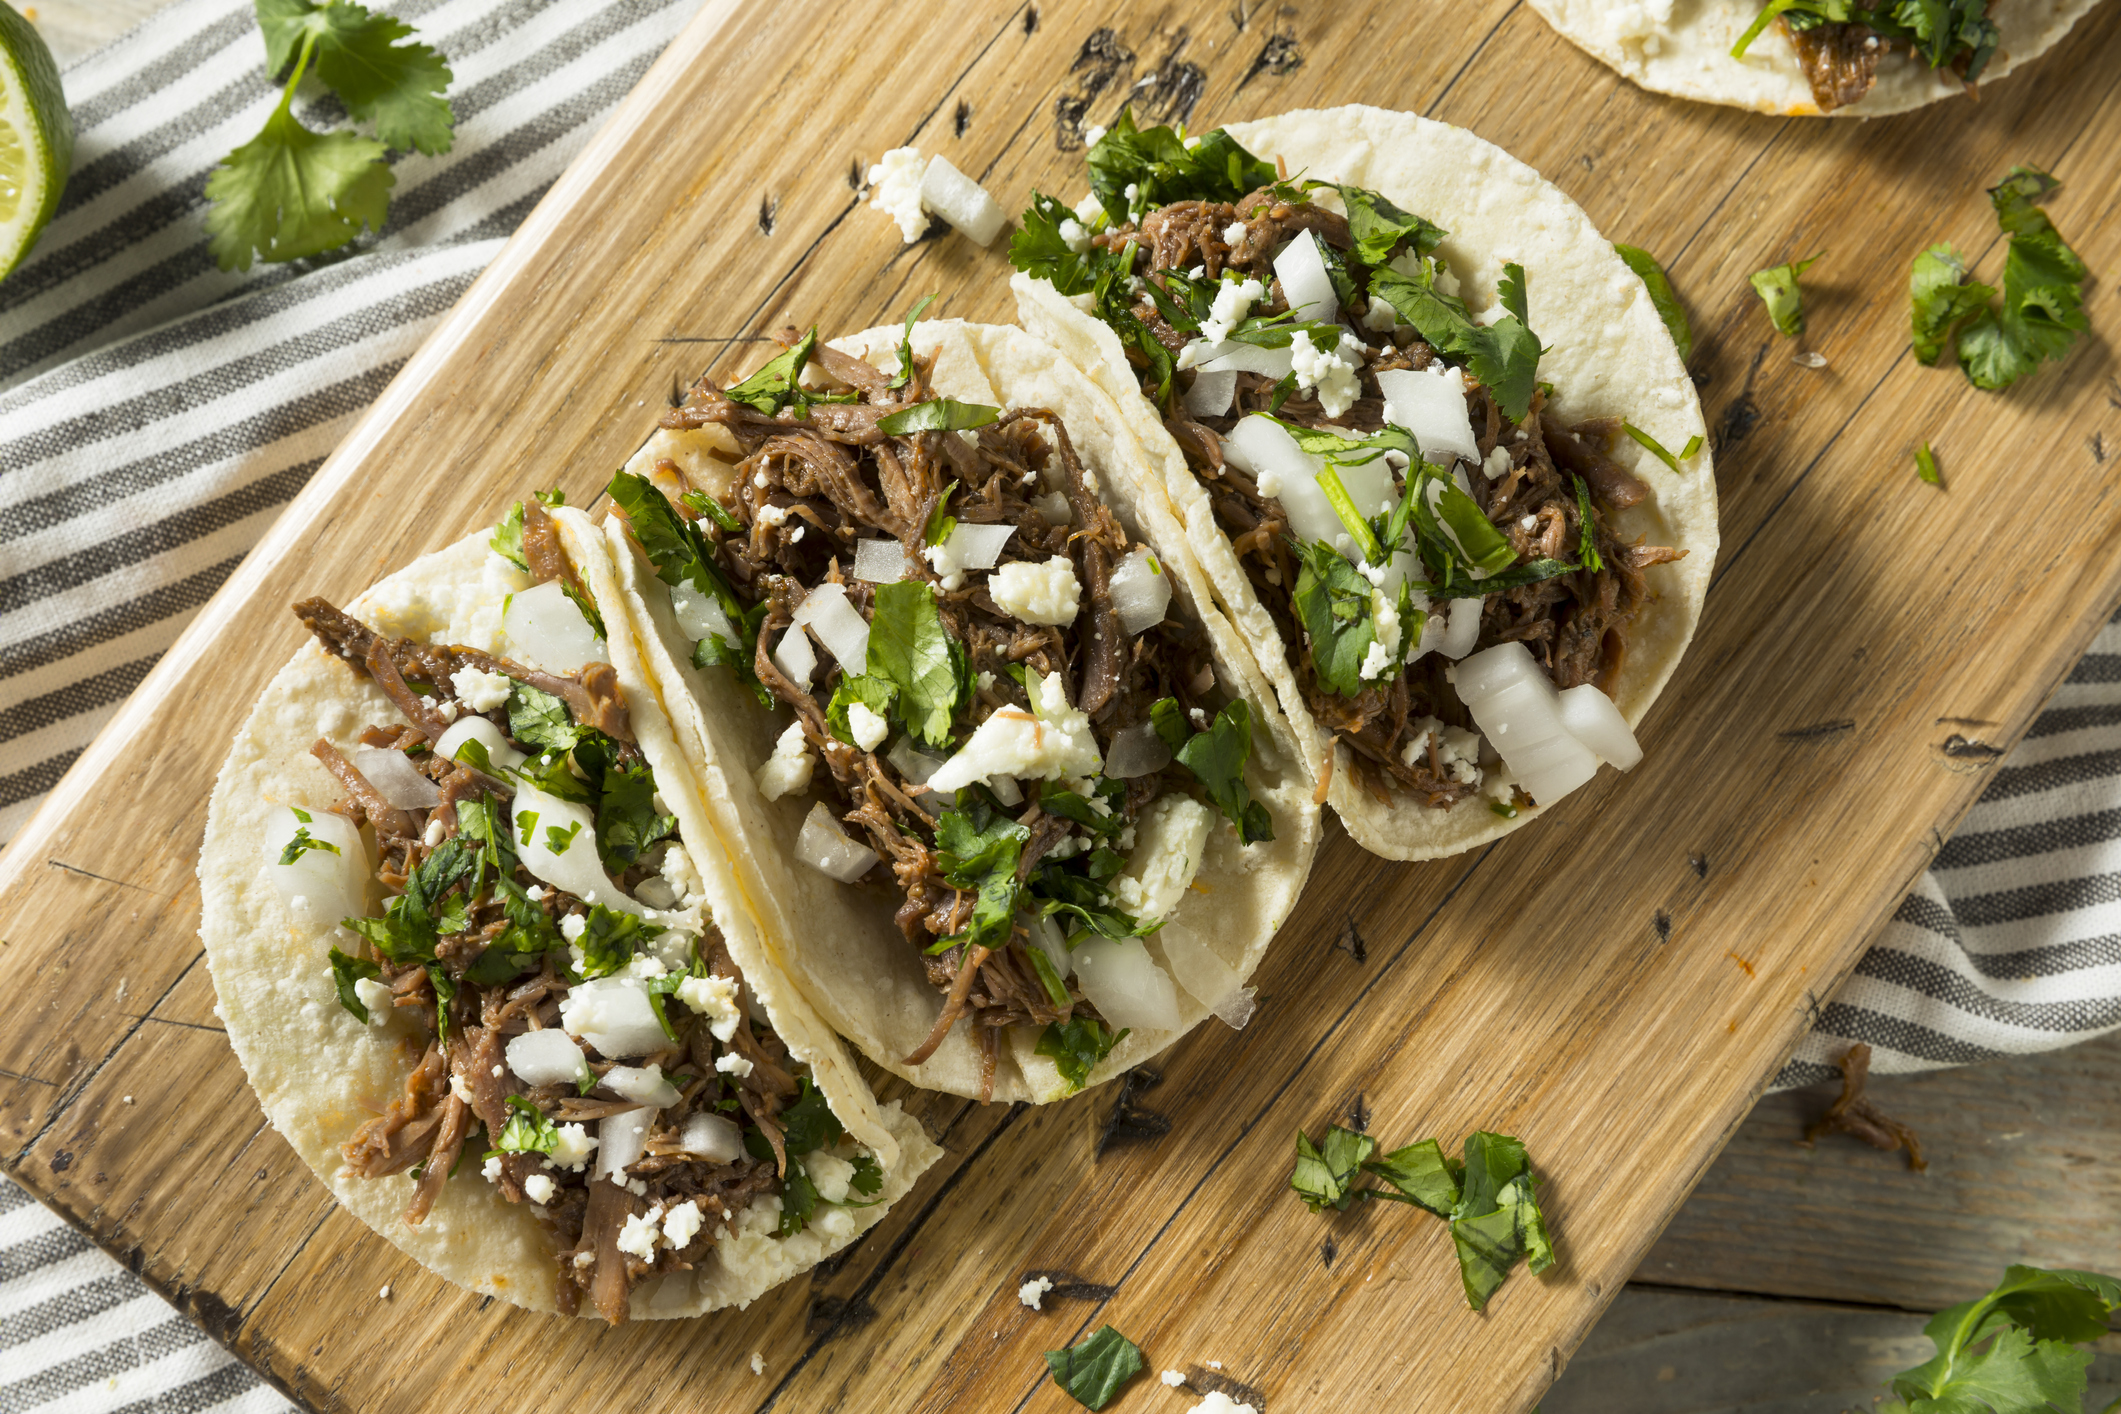 Man Dies After Minor League Baseball Taco-Eating Contest - VICE